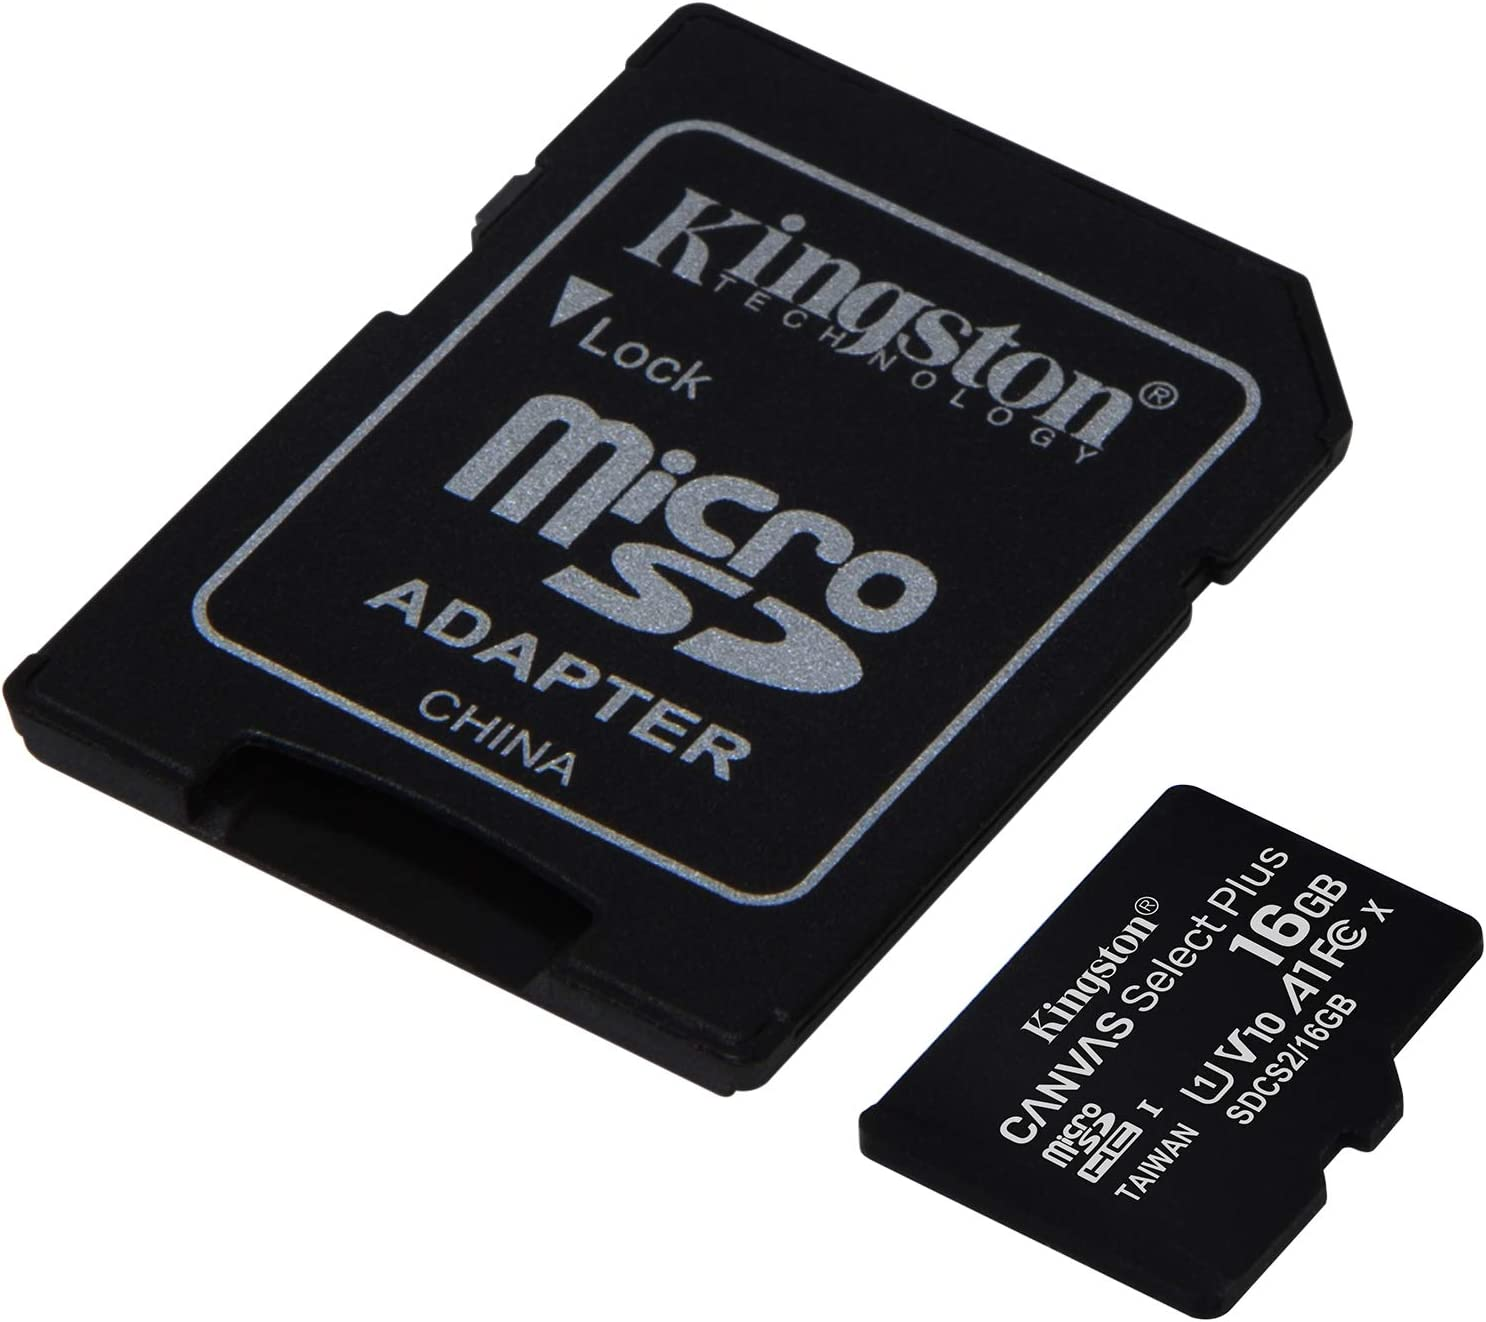 Professional Kingston 16GB MicroSDHC Micromax X252 with custom formatting and Standard SD Adapter! 32Mbps // Class 4